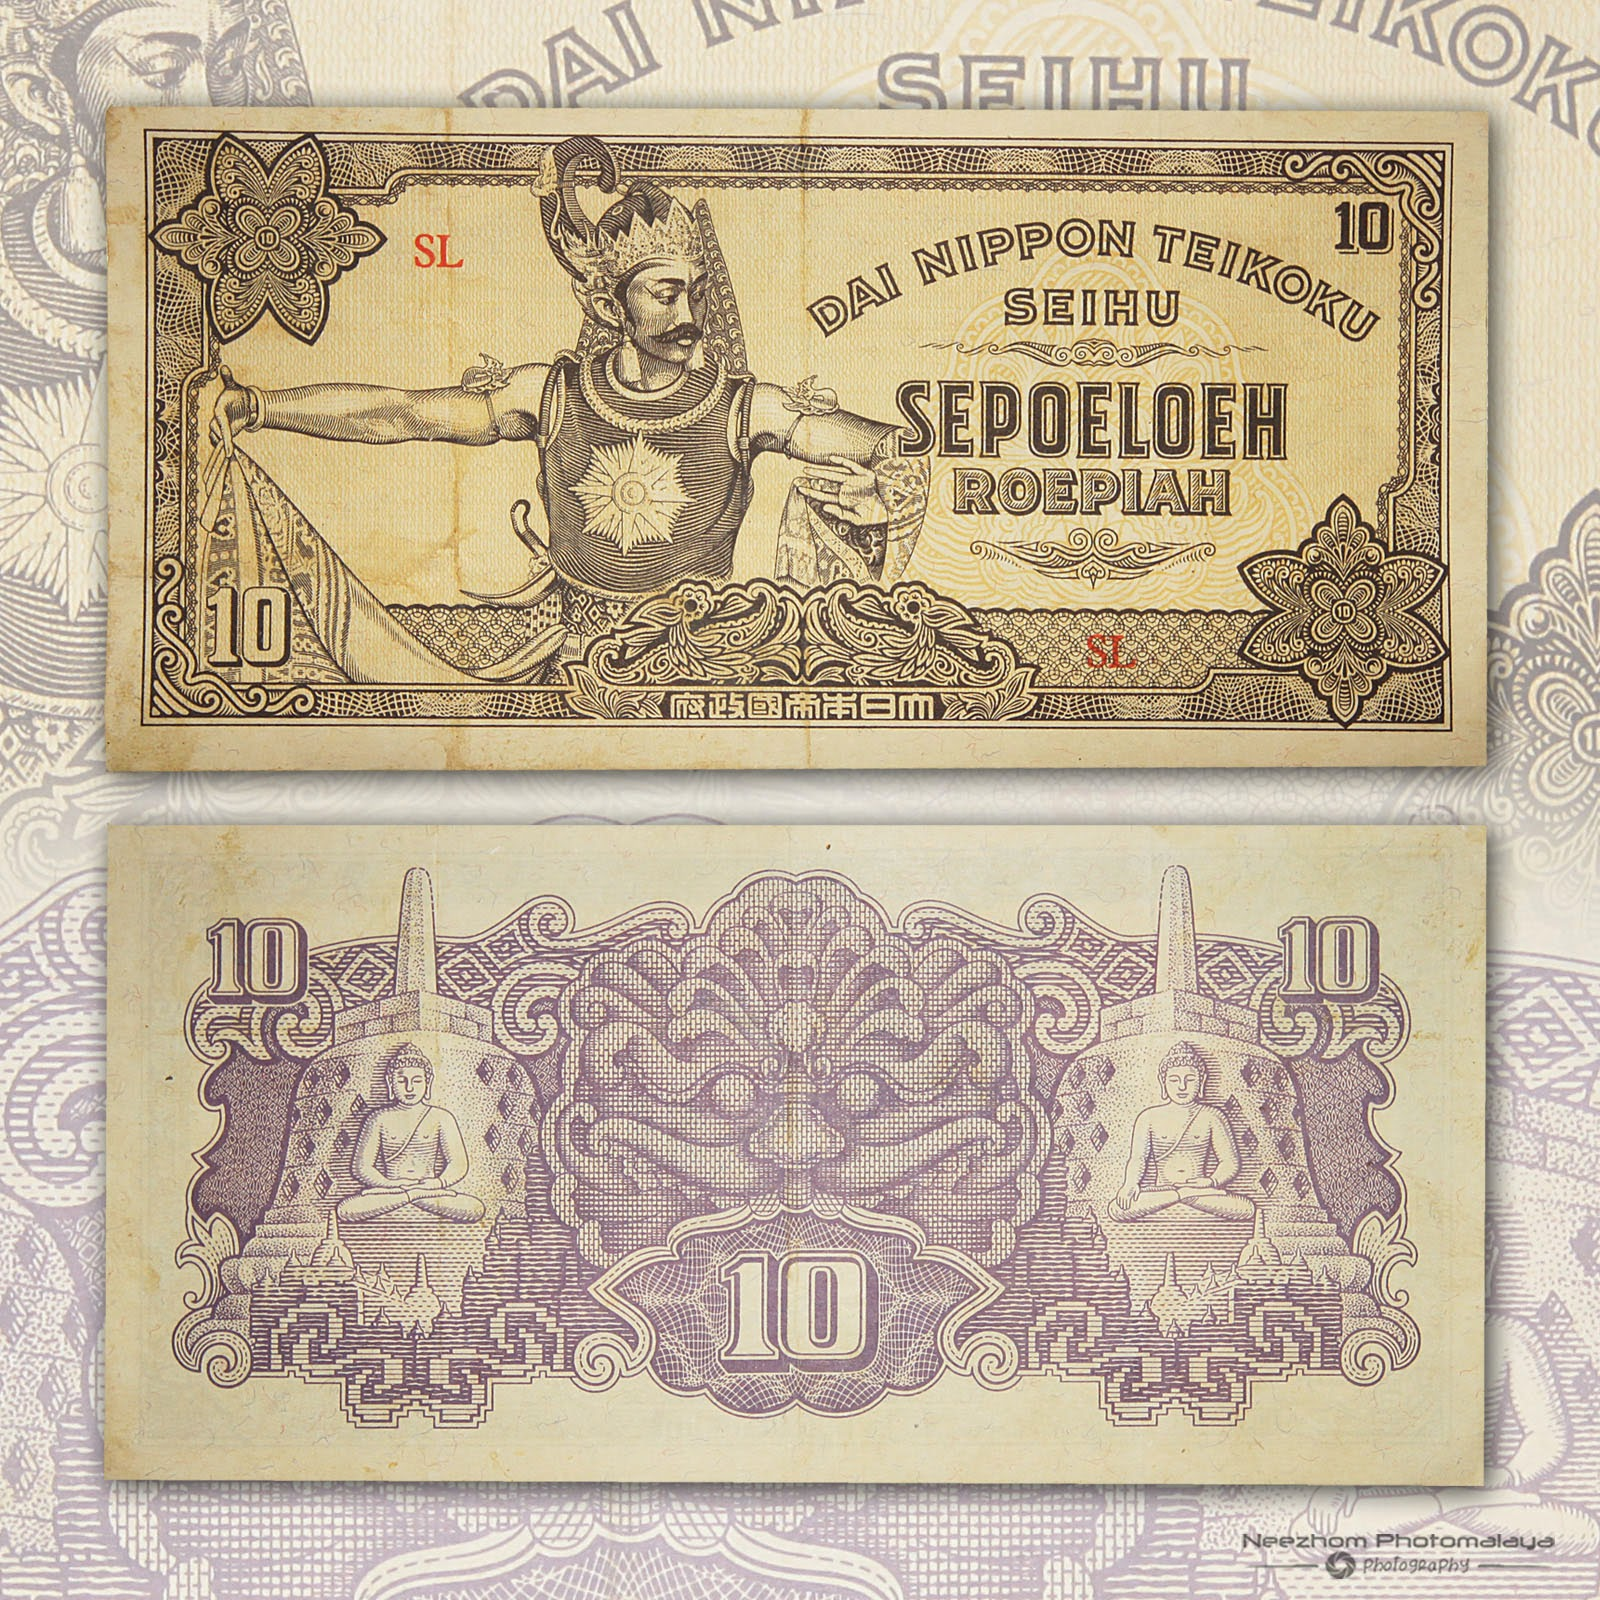 Sepoeloeh Roepiah Japanese Occupation East Indies paper money